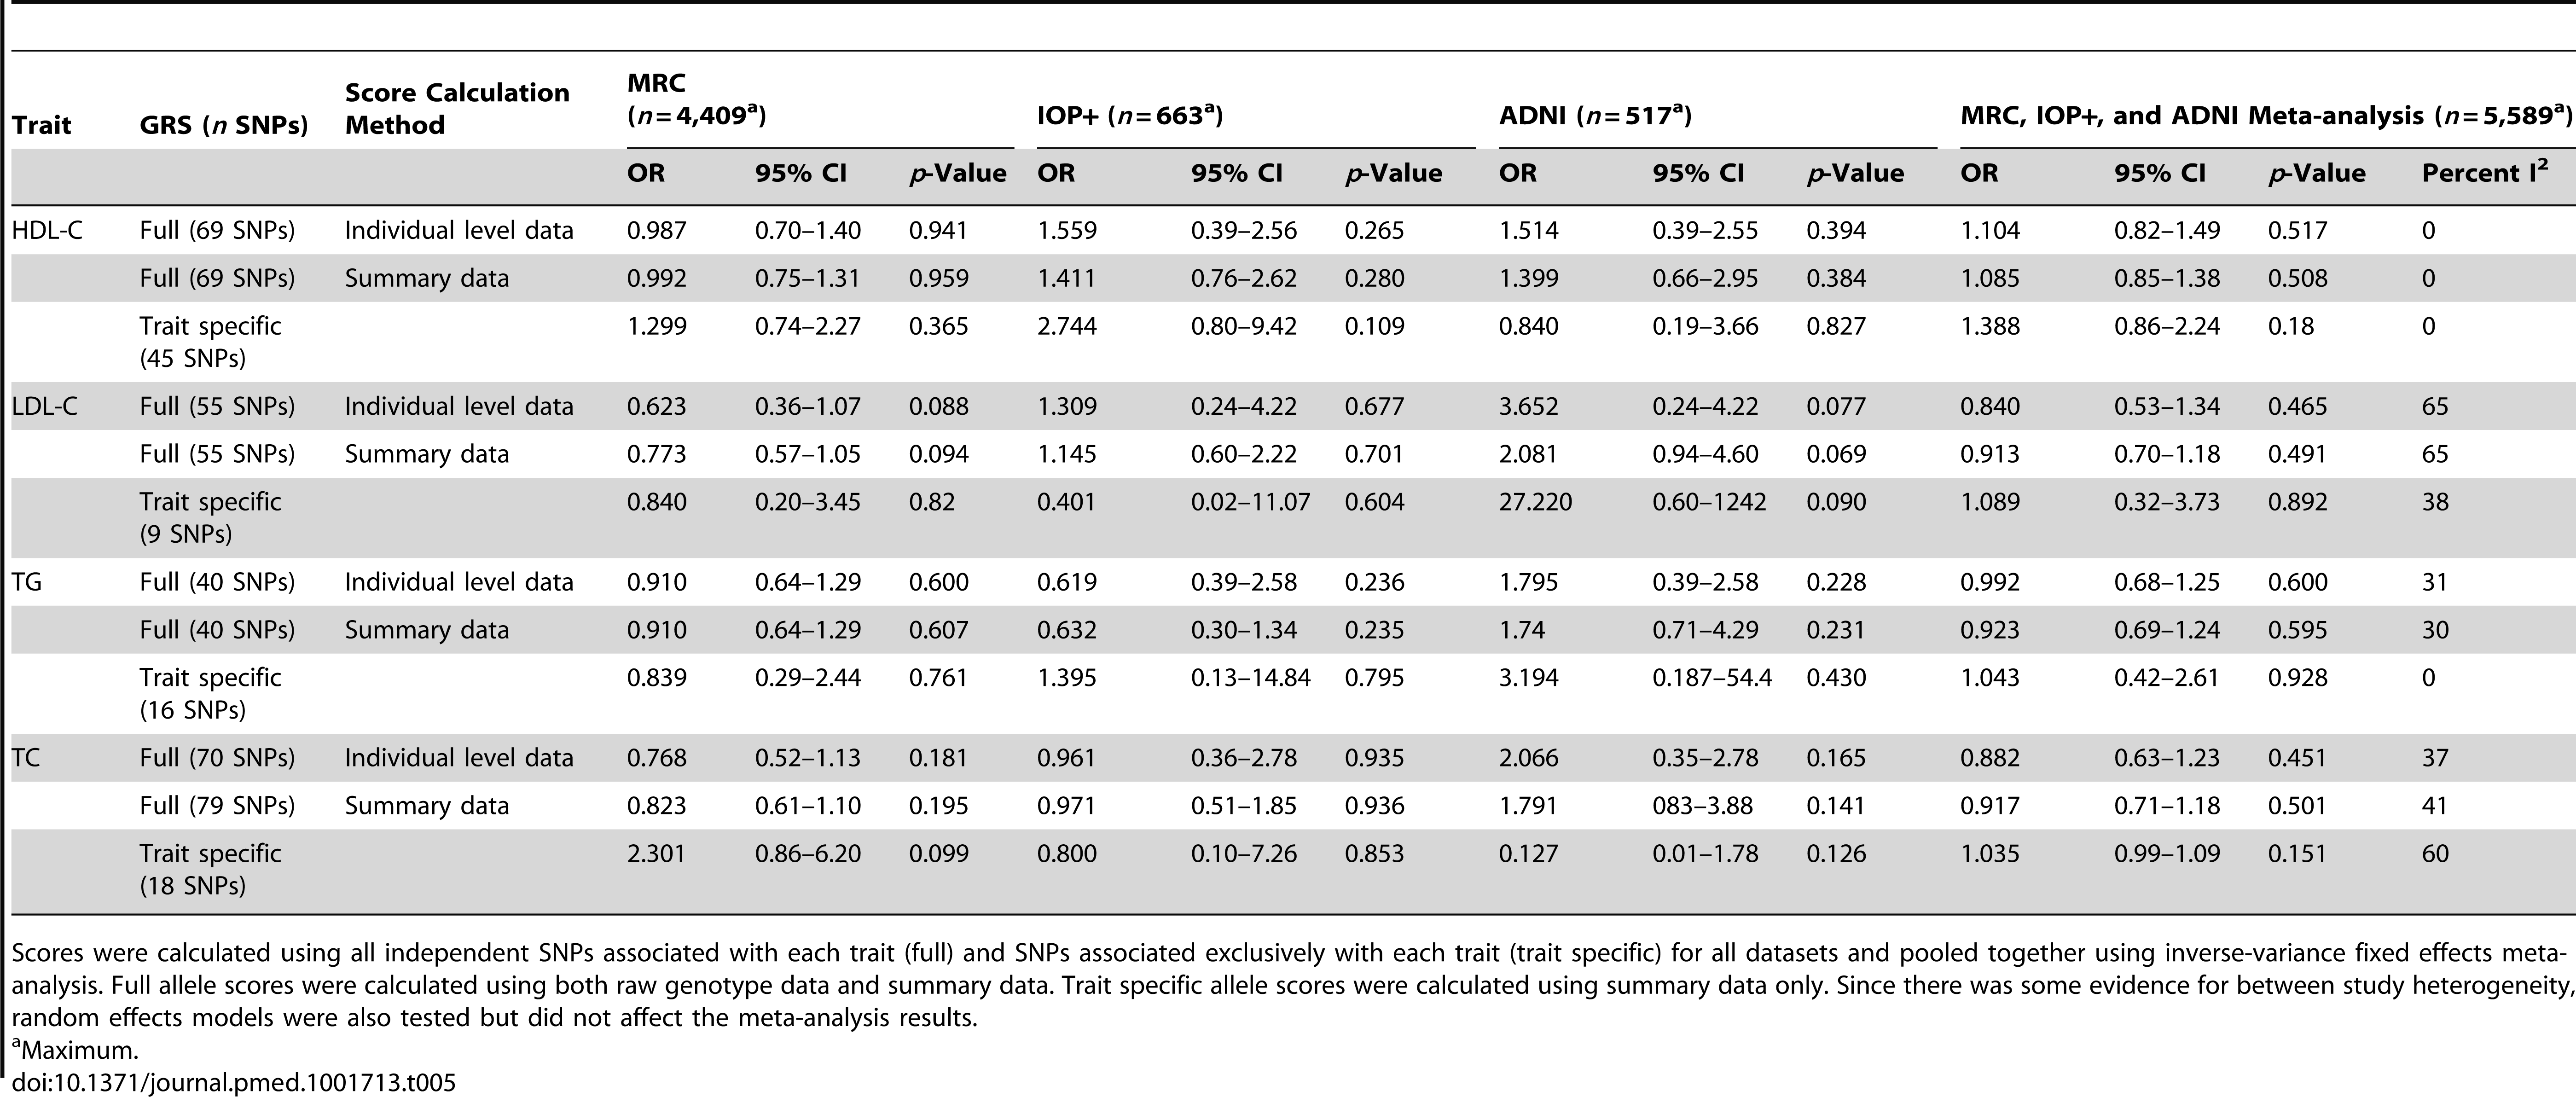 Association of lipid genotype risk scores with LOAD per one unit increase in lipid levels excluding population controls from the MRC-WTCCC2 group.